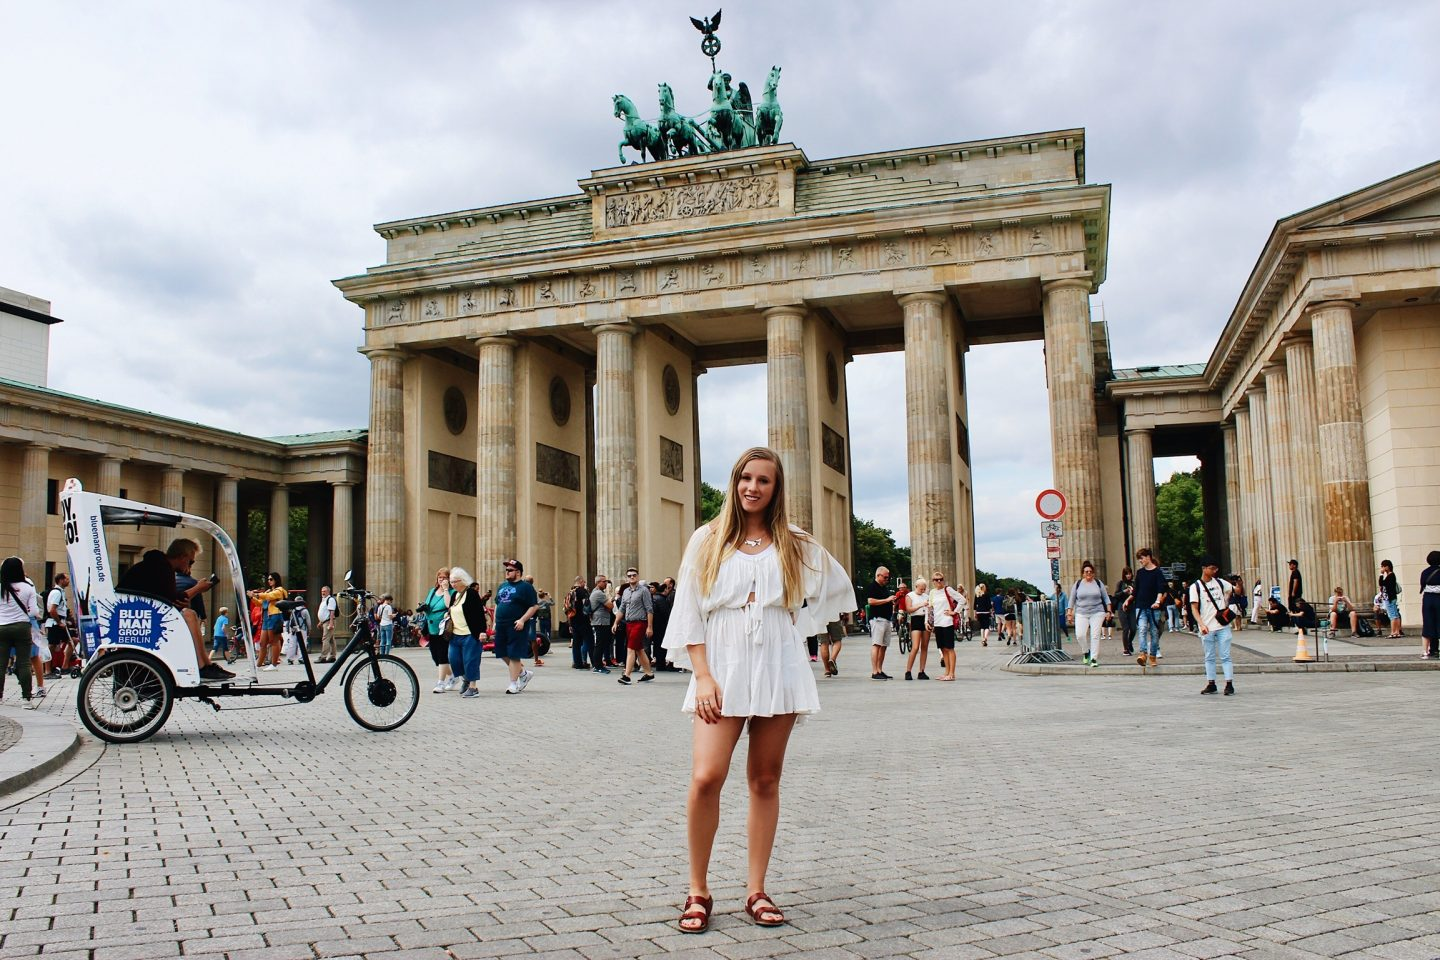 Photo in front of Brandenburg Gate in Berlin, Germany